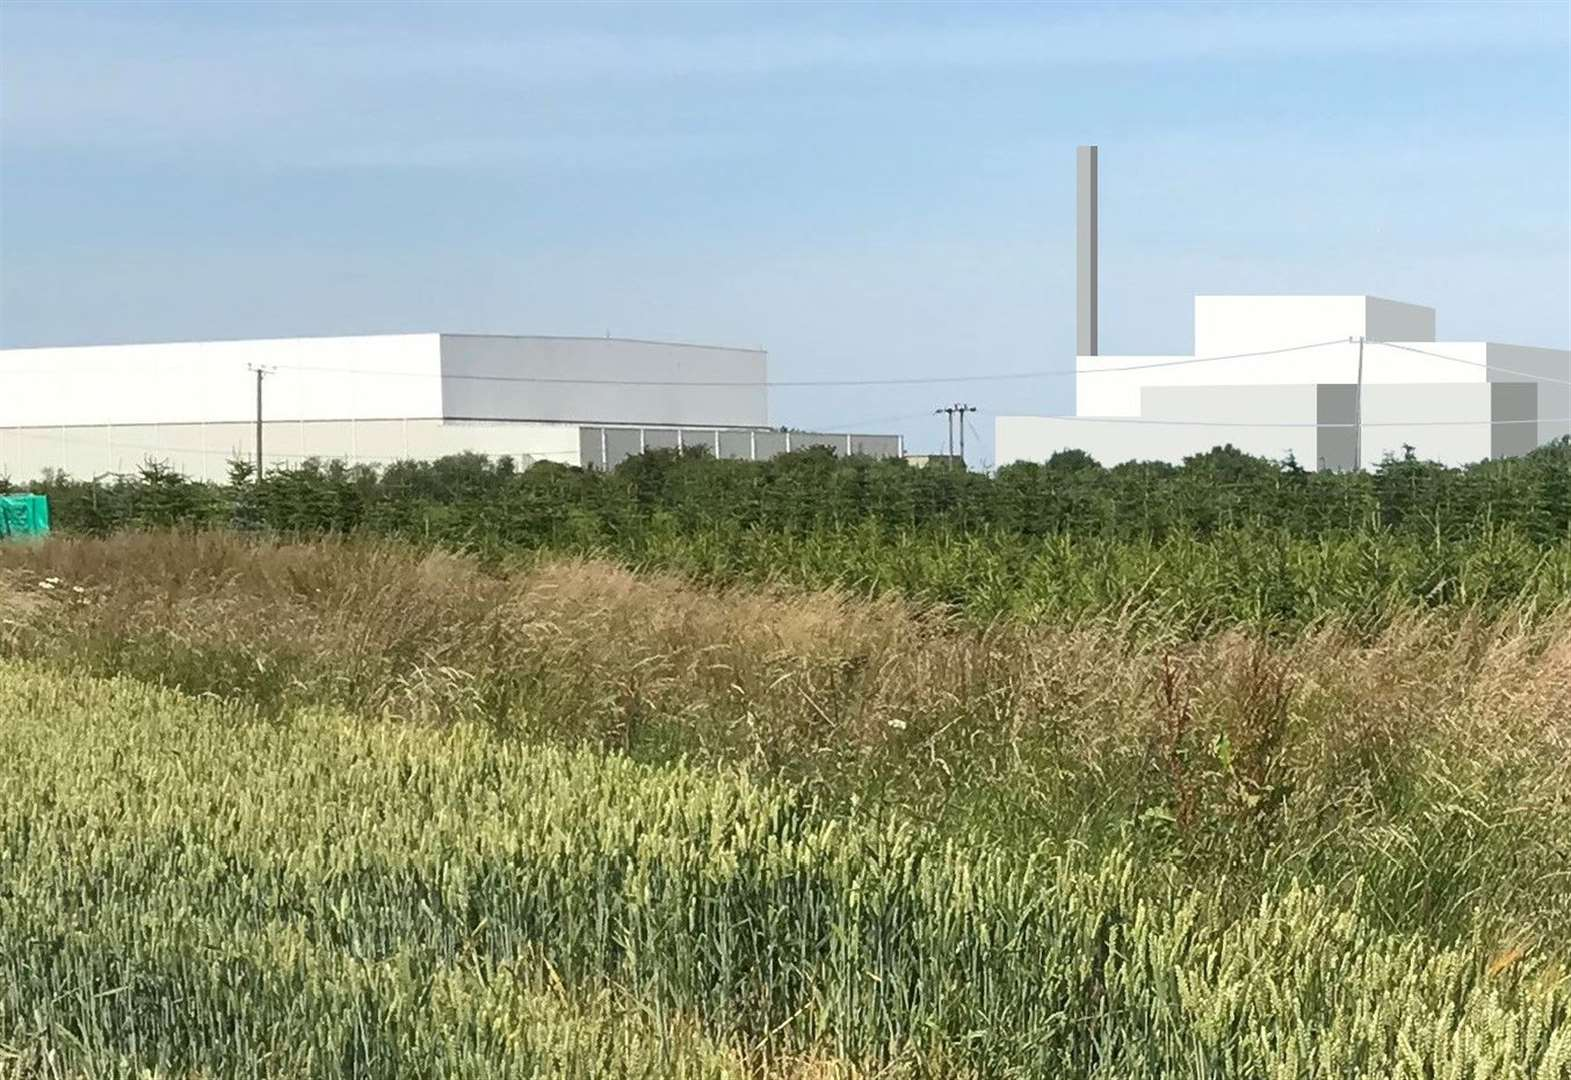 Firm takes first formal step towards building waste incinerator in Wisbech